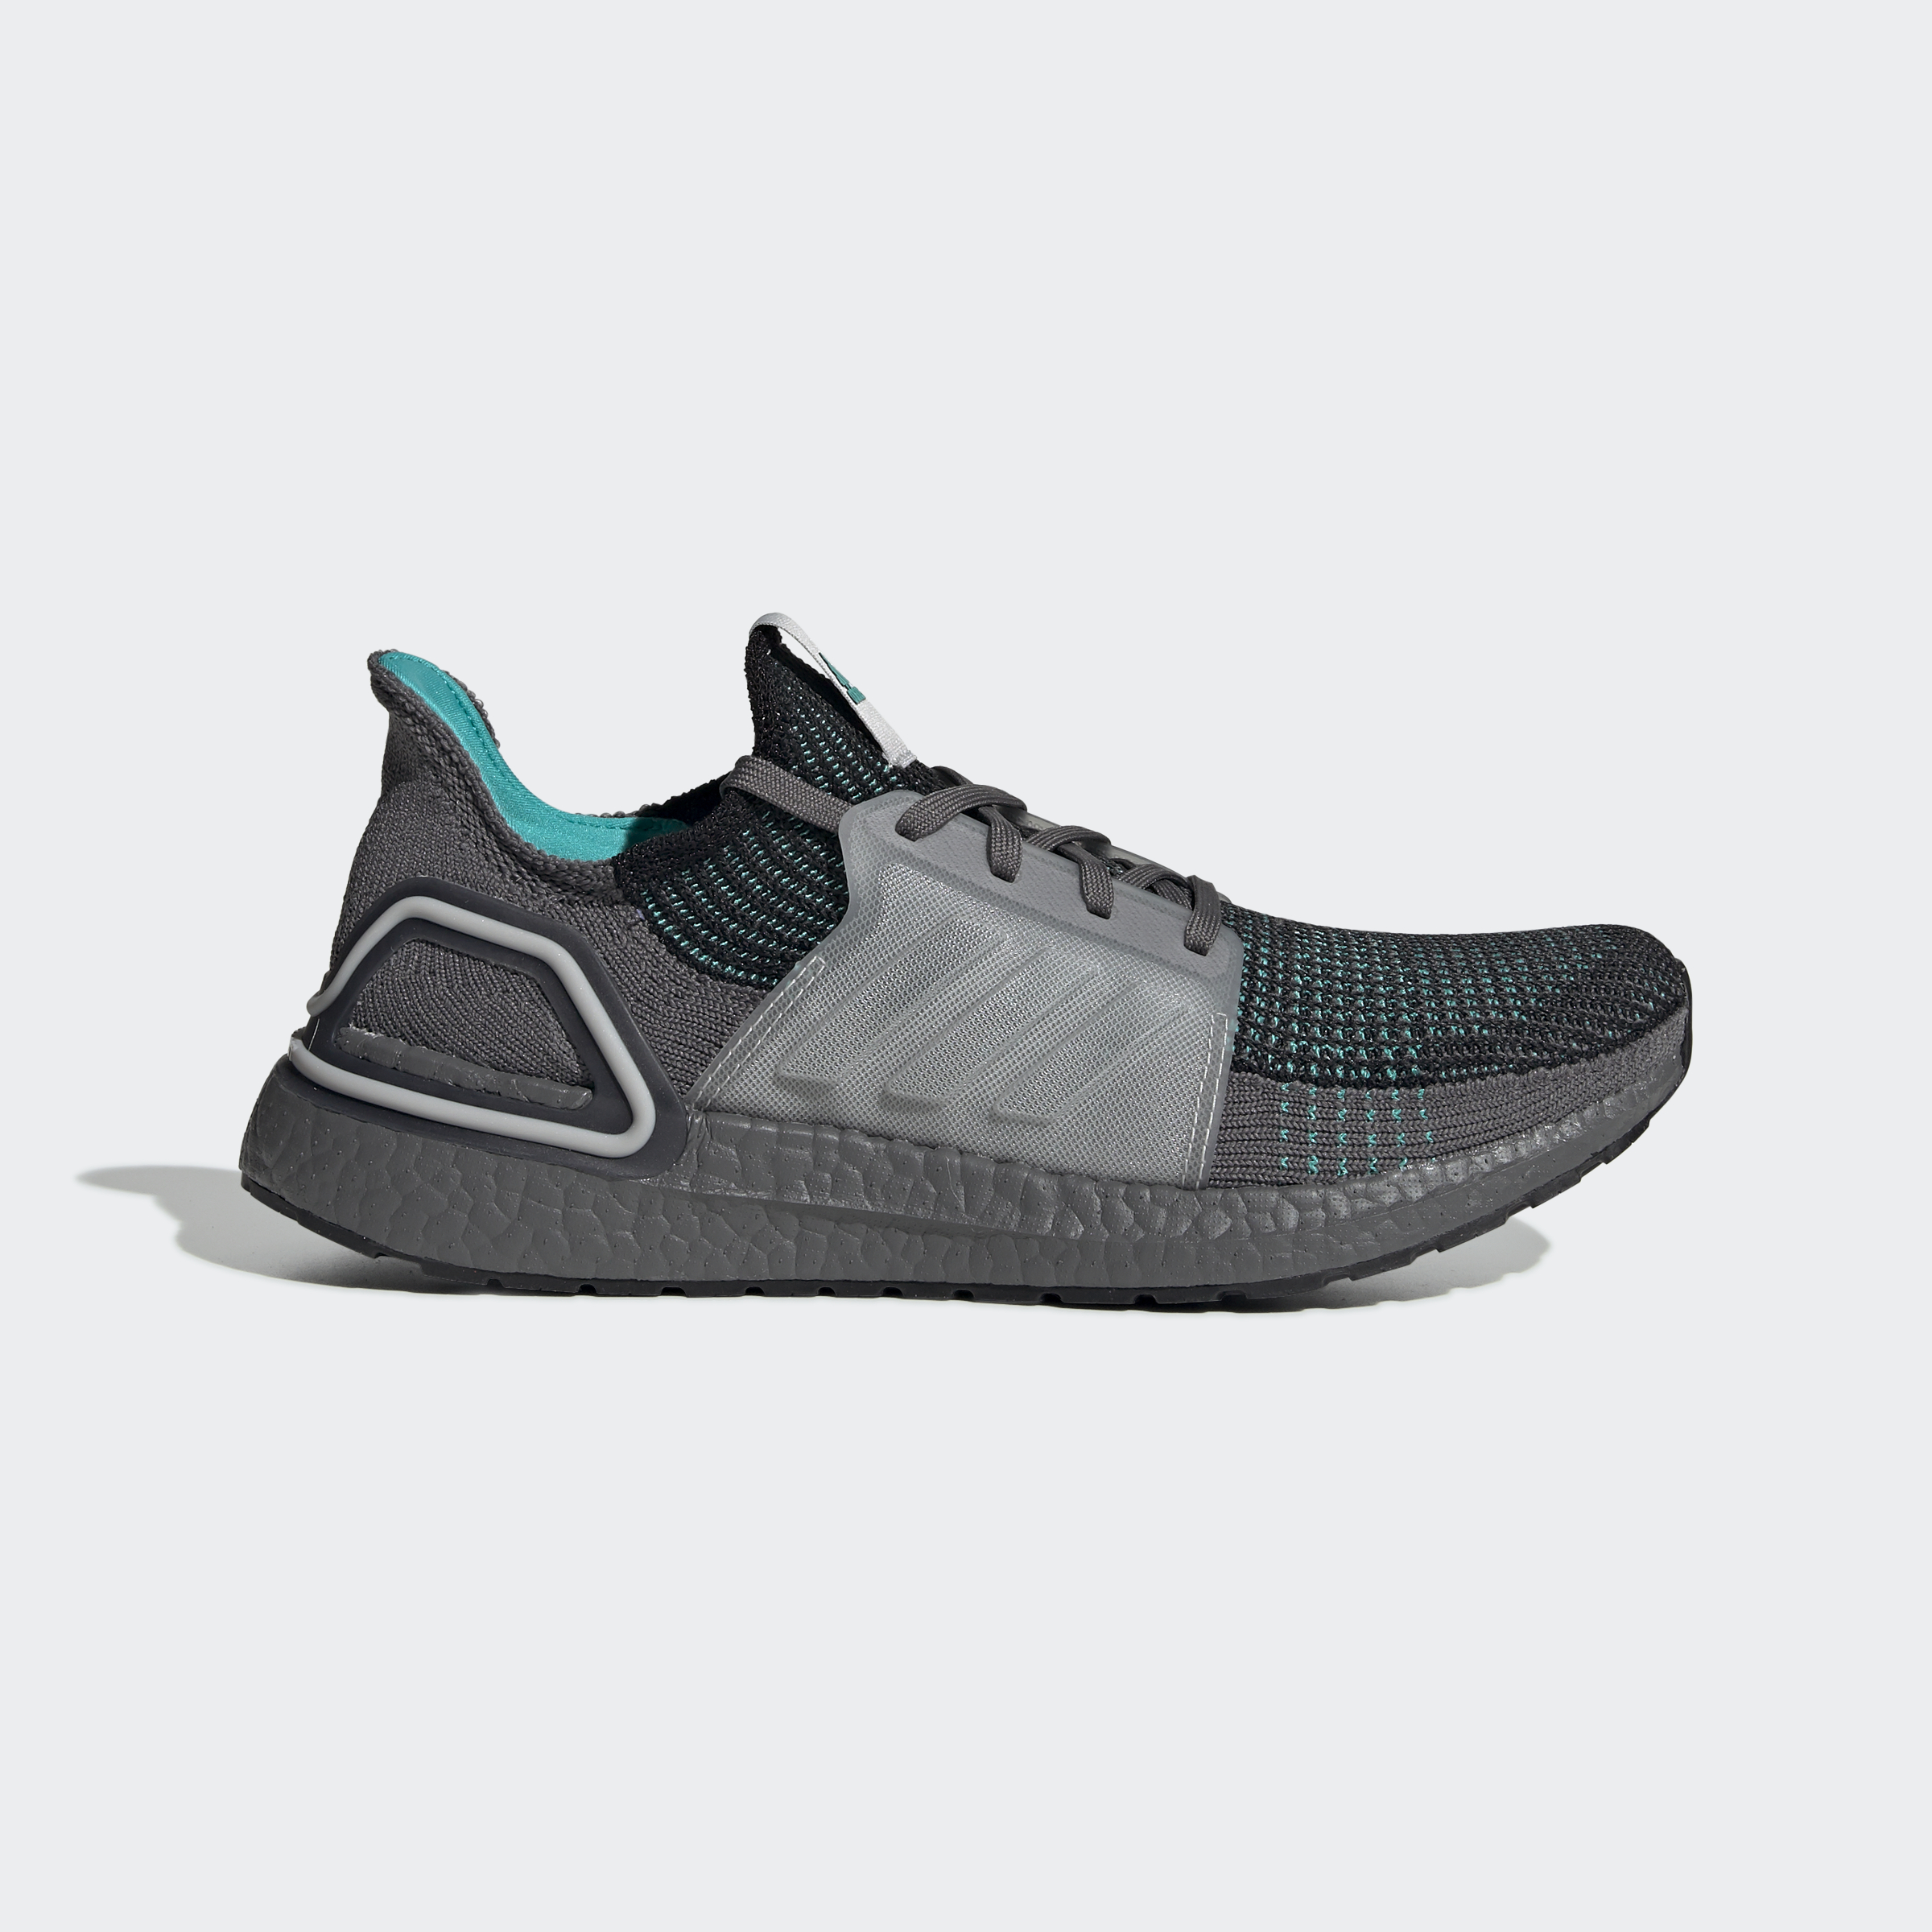 adidas-Ultraboost-19-Shoes-Athletic-amp-Sneakers thumbnail 14